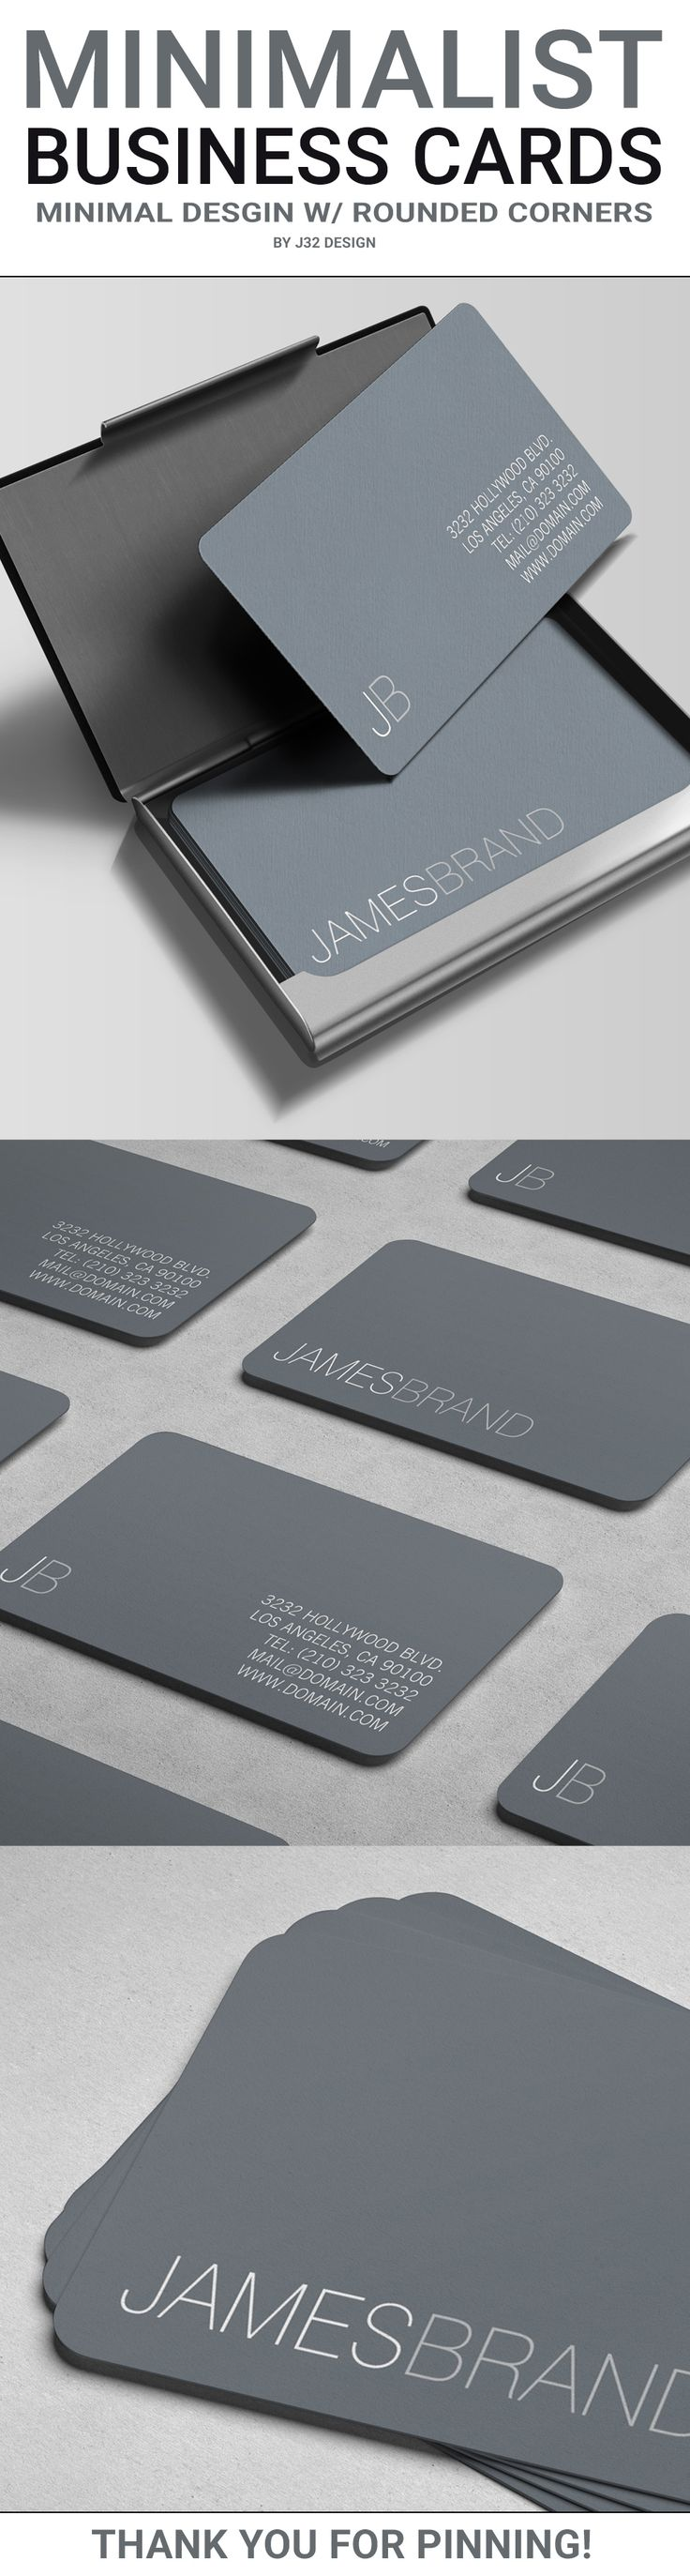 Elegant Minimalist Business Card An elegant two sided business card with a very clean and minimal look using a thin font type. The front shows only your first and last name. The back side includes your contact details on the right and your names initials http://jrstudioweb.com/diseno-grafico/diseno-de-logotipos/